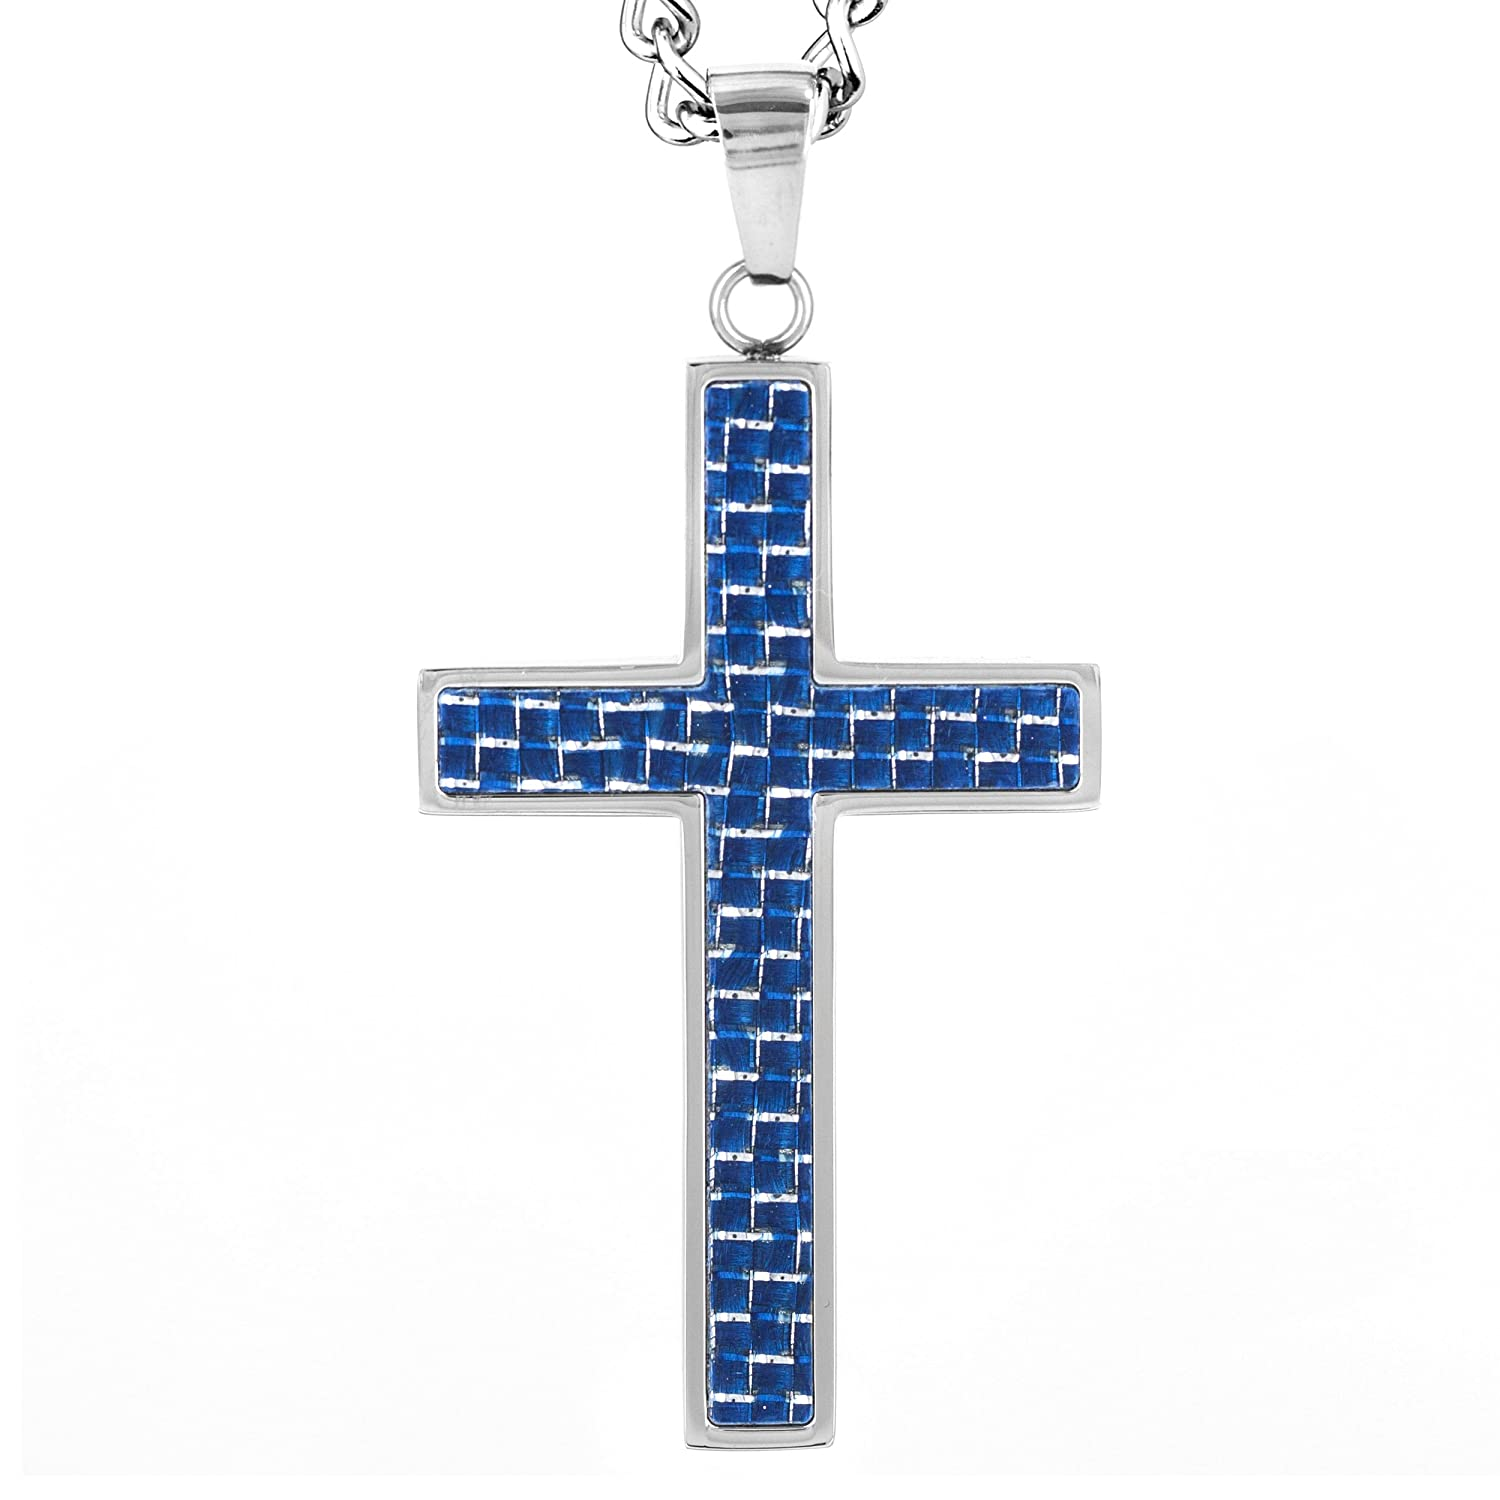 Crucible Stainless Steel Polished Blue Carbon Fiber Cross Pendant Necklace - 24""